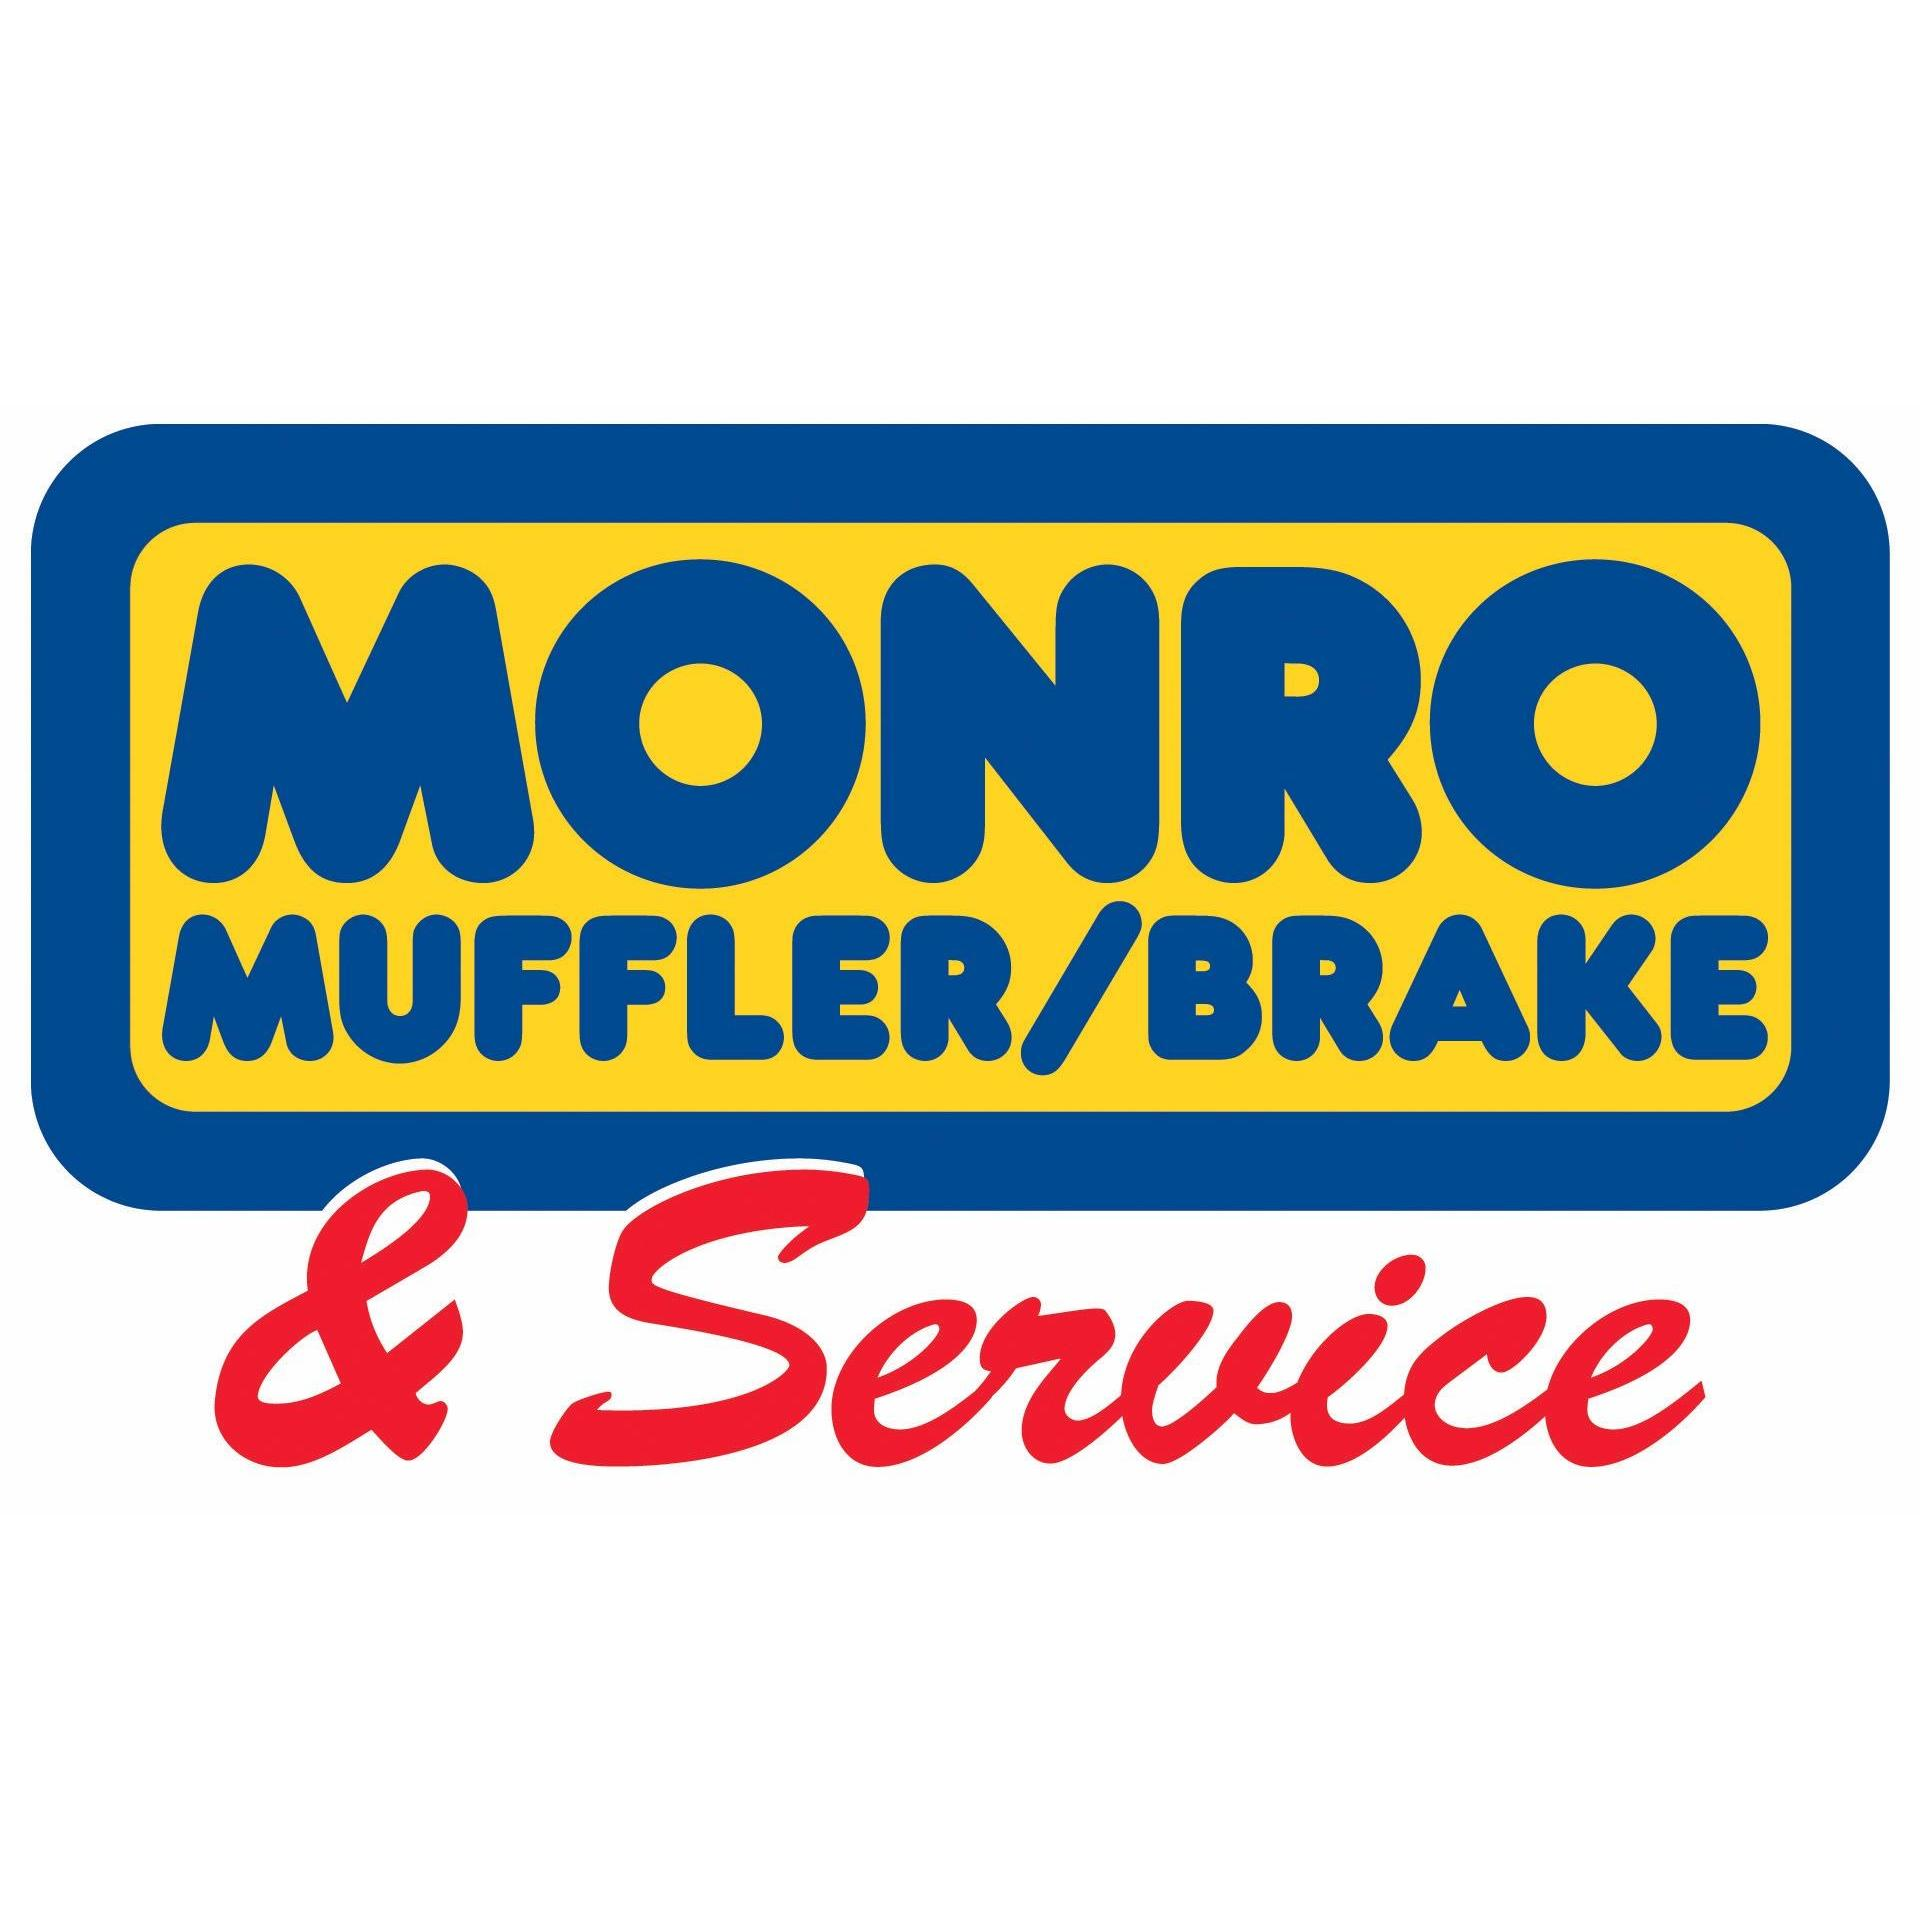 Monro Muffler Brake was founded in , originally as a franchise of Midas Muffler, by Charles August. Within 10 years, August decided that he wanted his shops to do more than just muffler work. Along with his two brothers, August began.